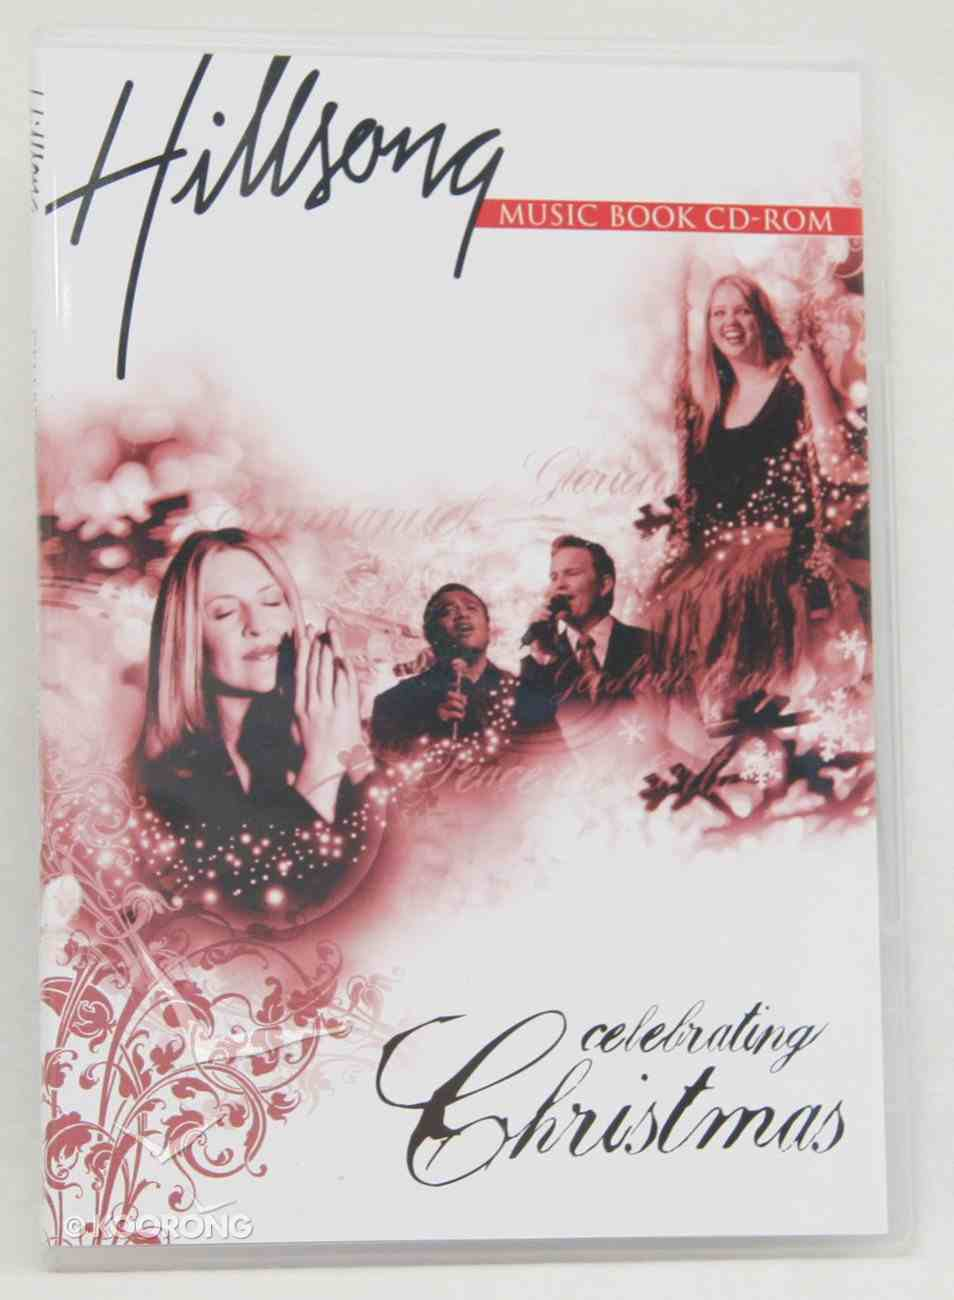 2005 Hillsong Christmas: Celebrating Christmas CDROM (Music Book) CD-rom